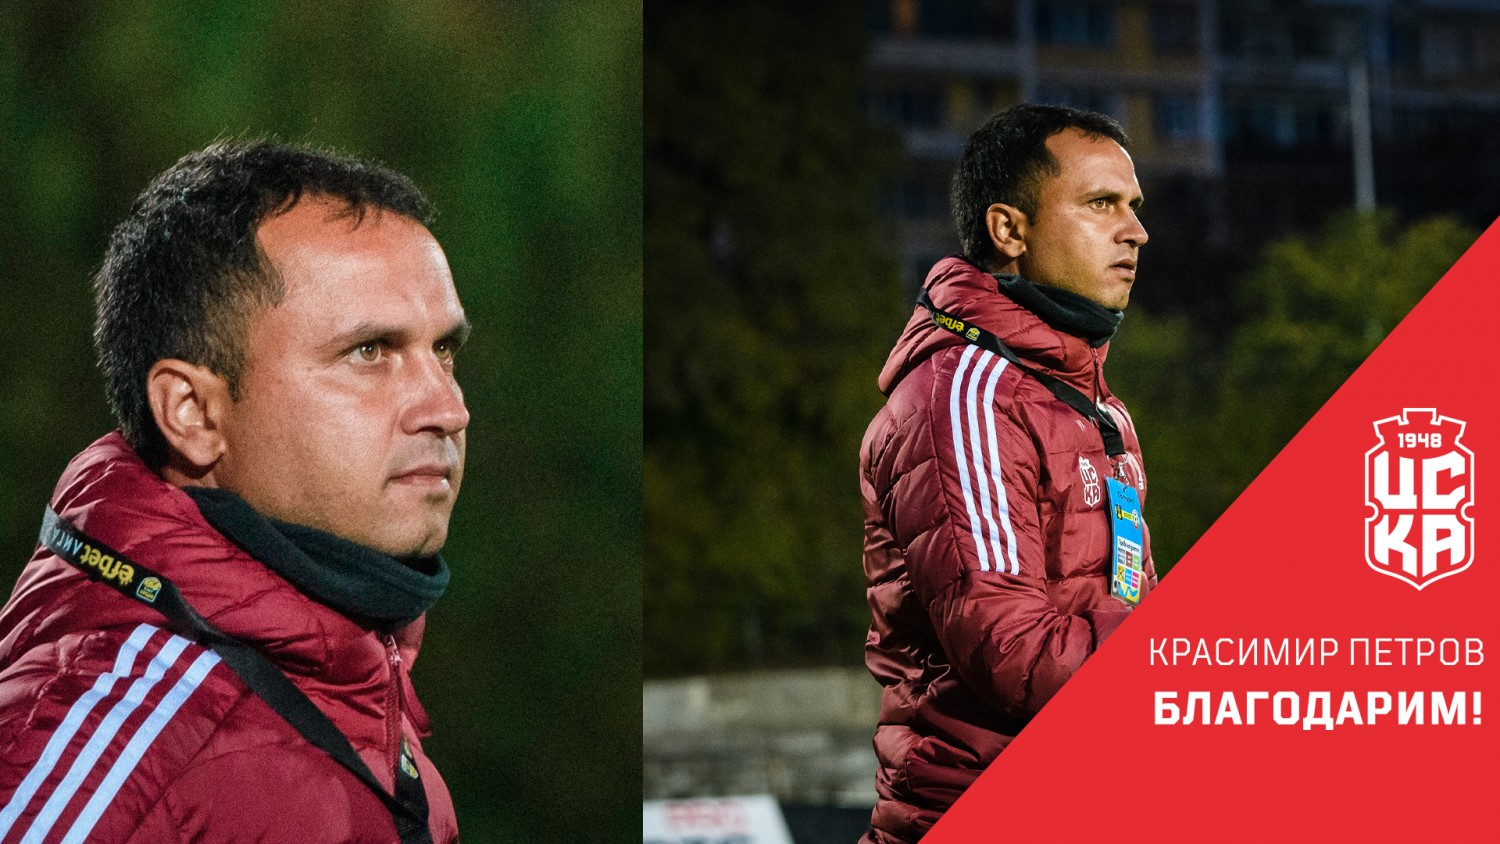 Krasimir Petrov is no longer head coach of CSKA